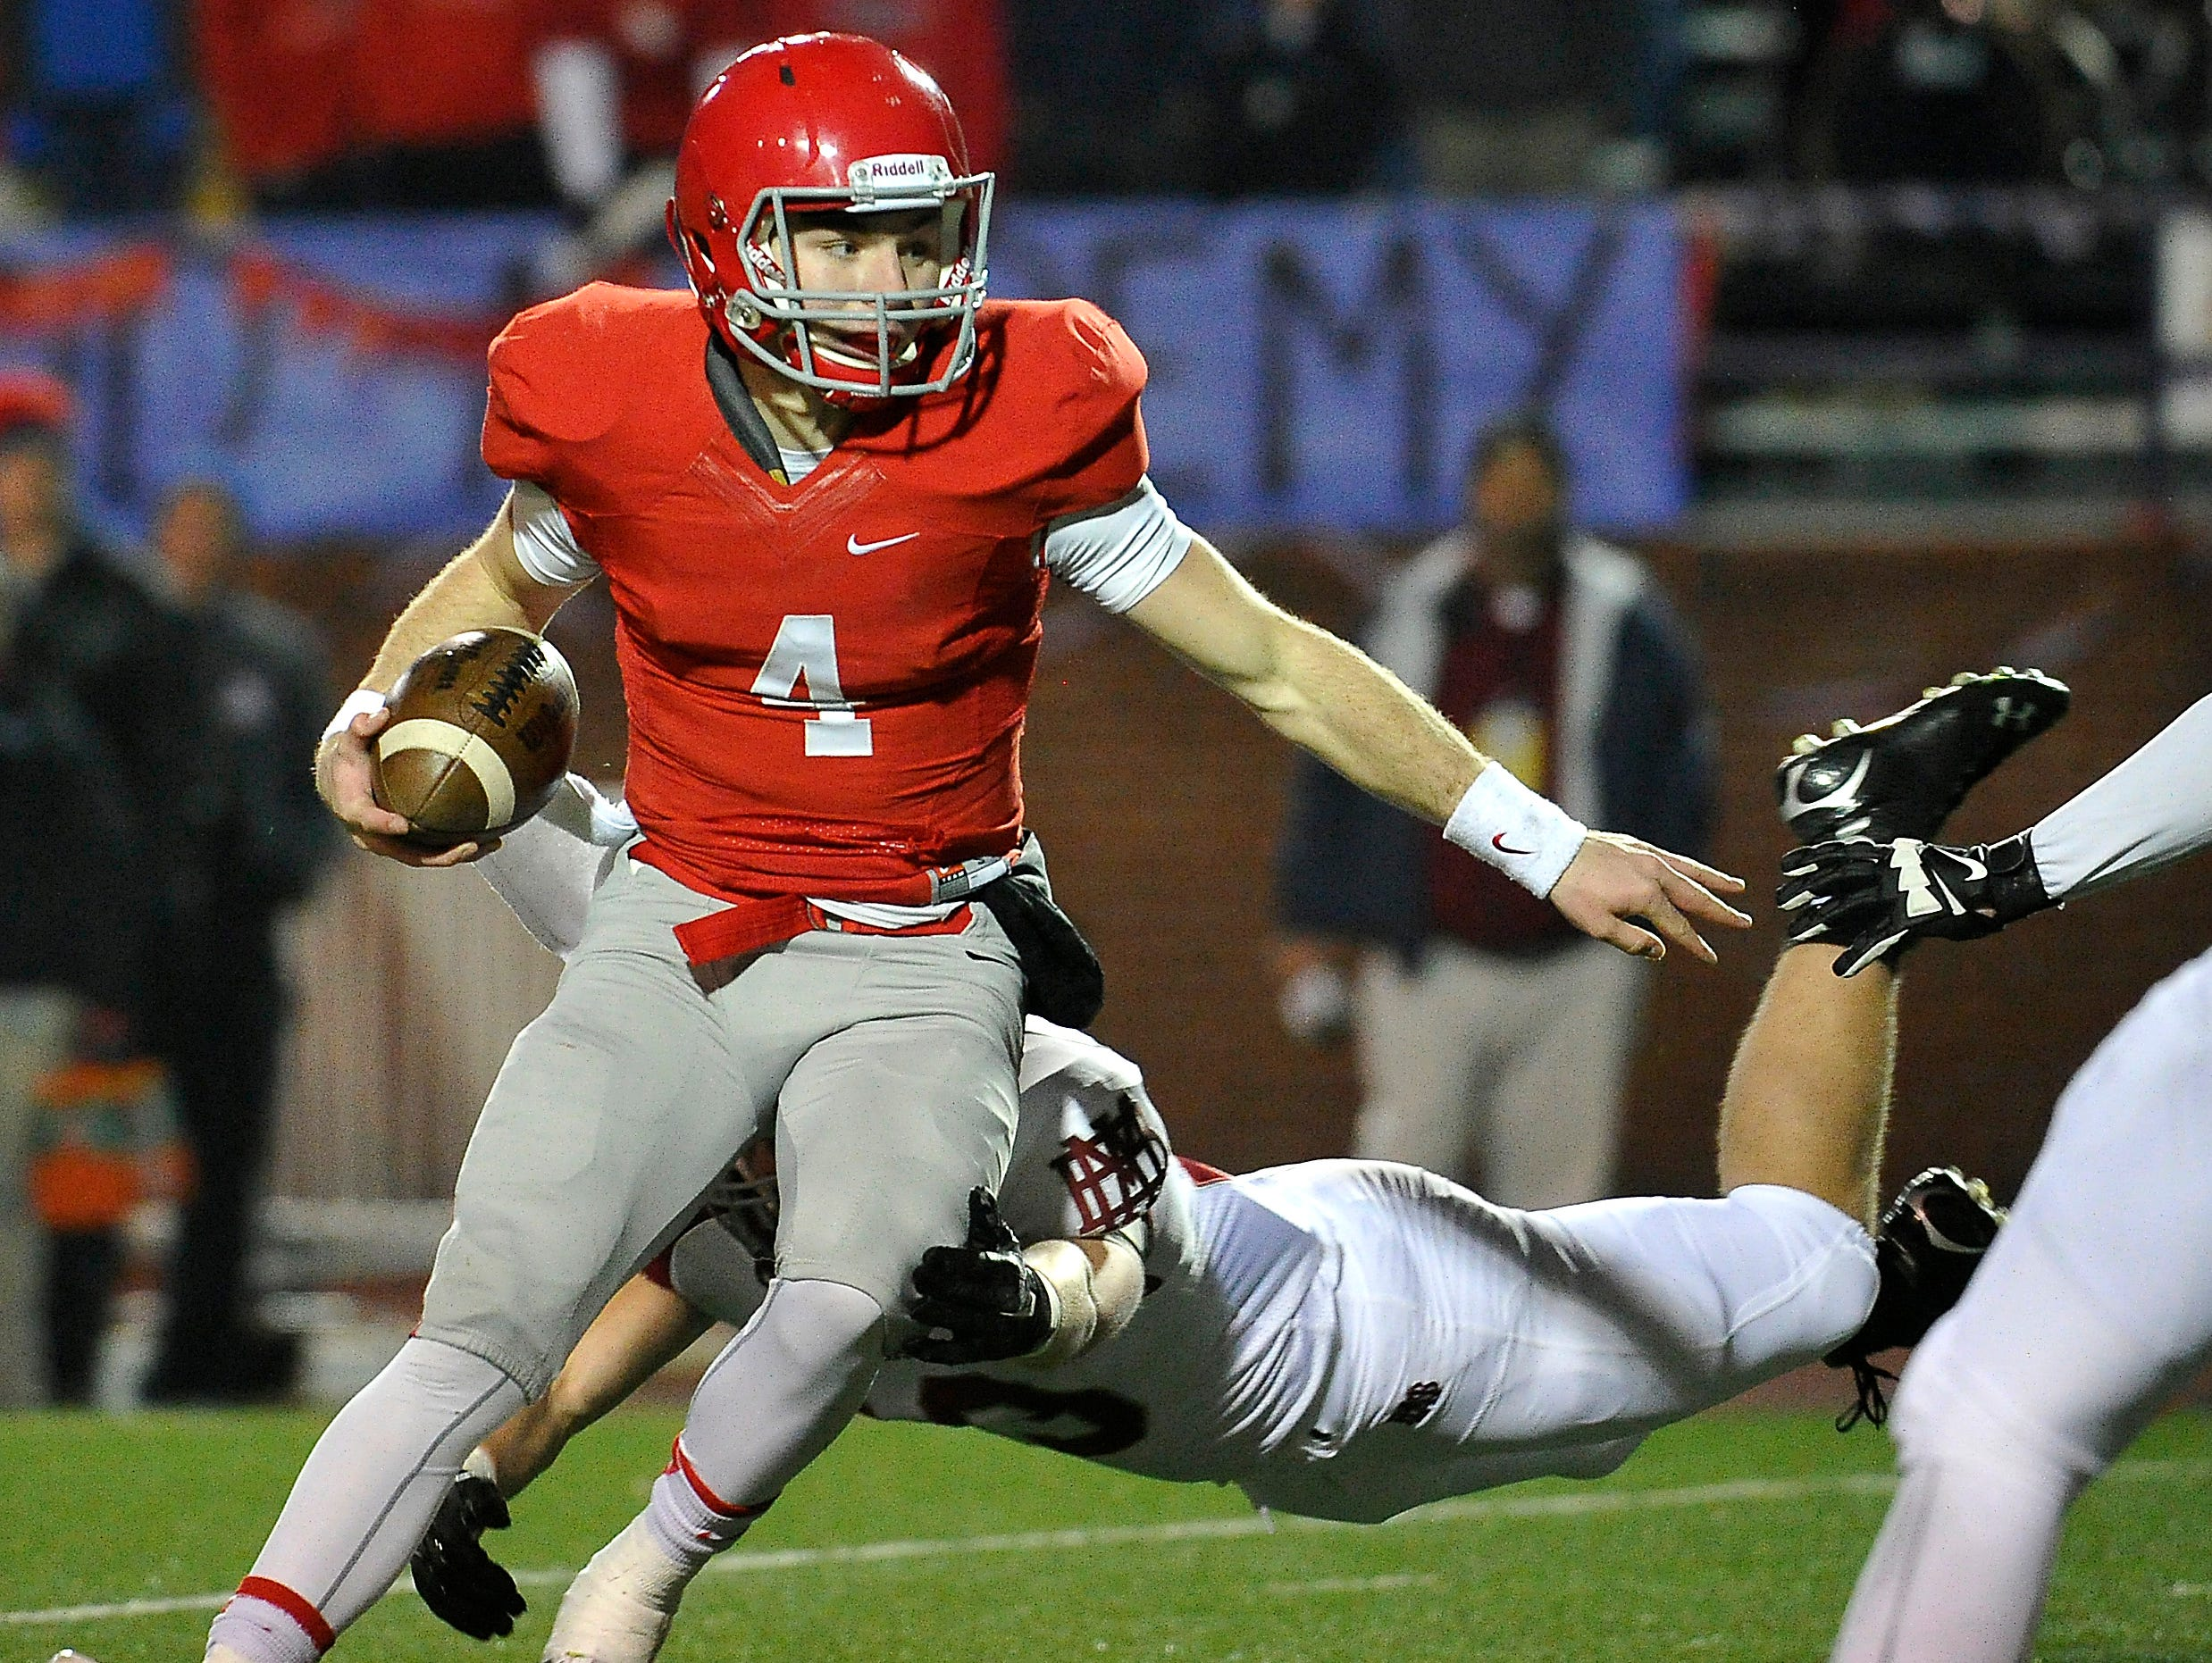 Brentwood Academy's Jeremiah Oatsvall scrambles in the DII-AA state title game. Oatsvall was named offensive MVP, completing 17 of 29 pass attempts for 280 yards and gaining 159 yards rushing and two scores on 23 carries.